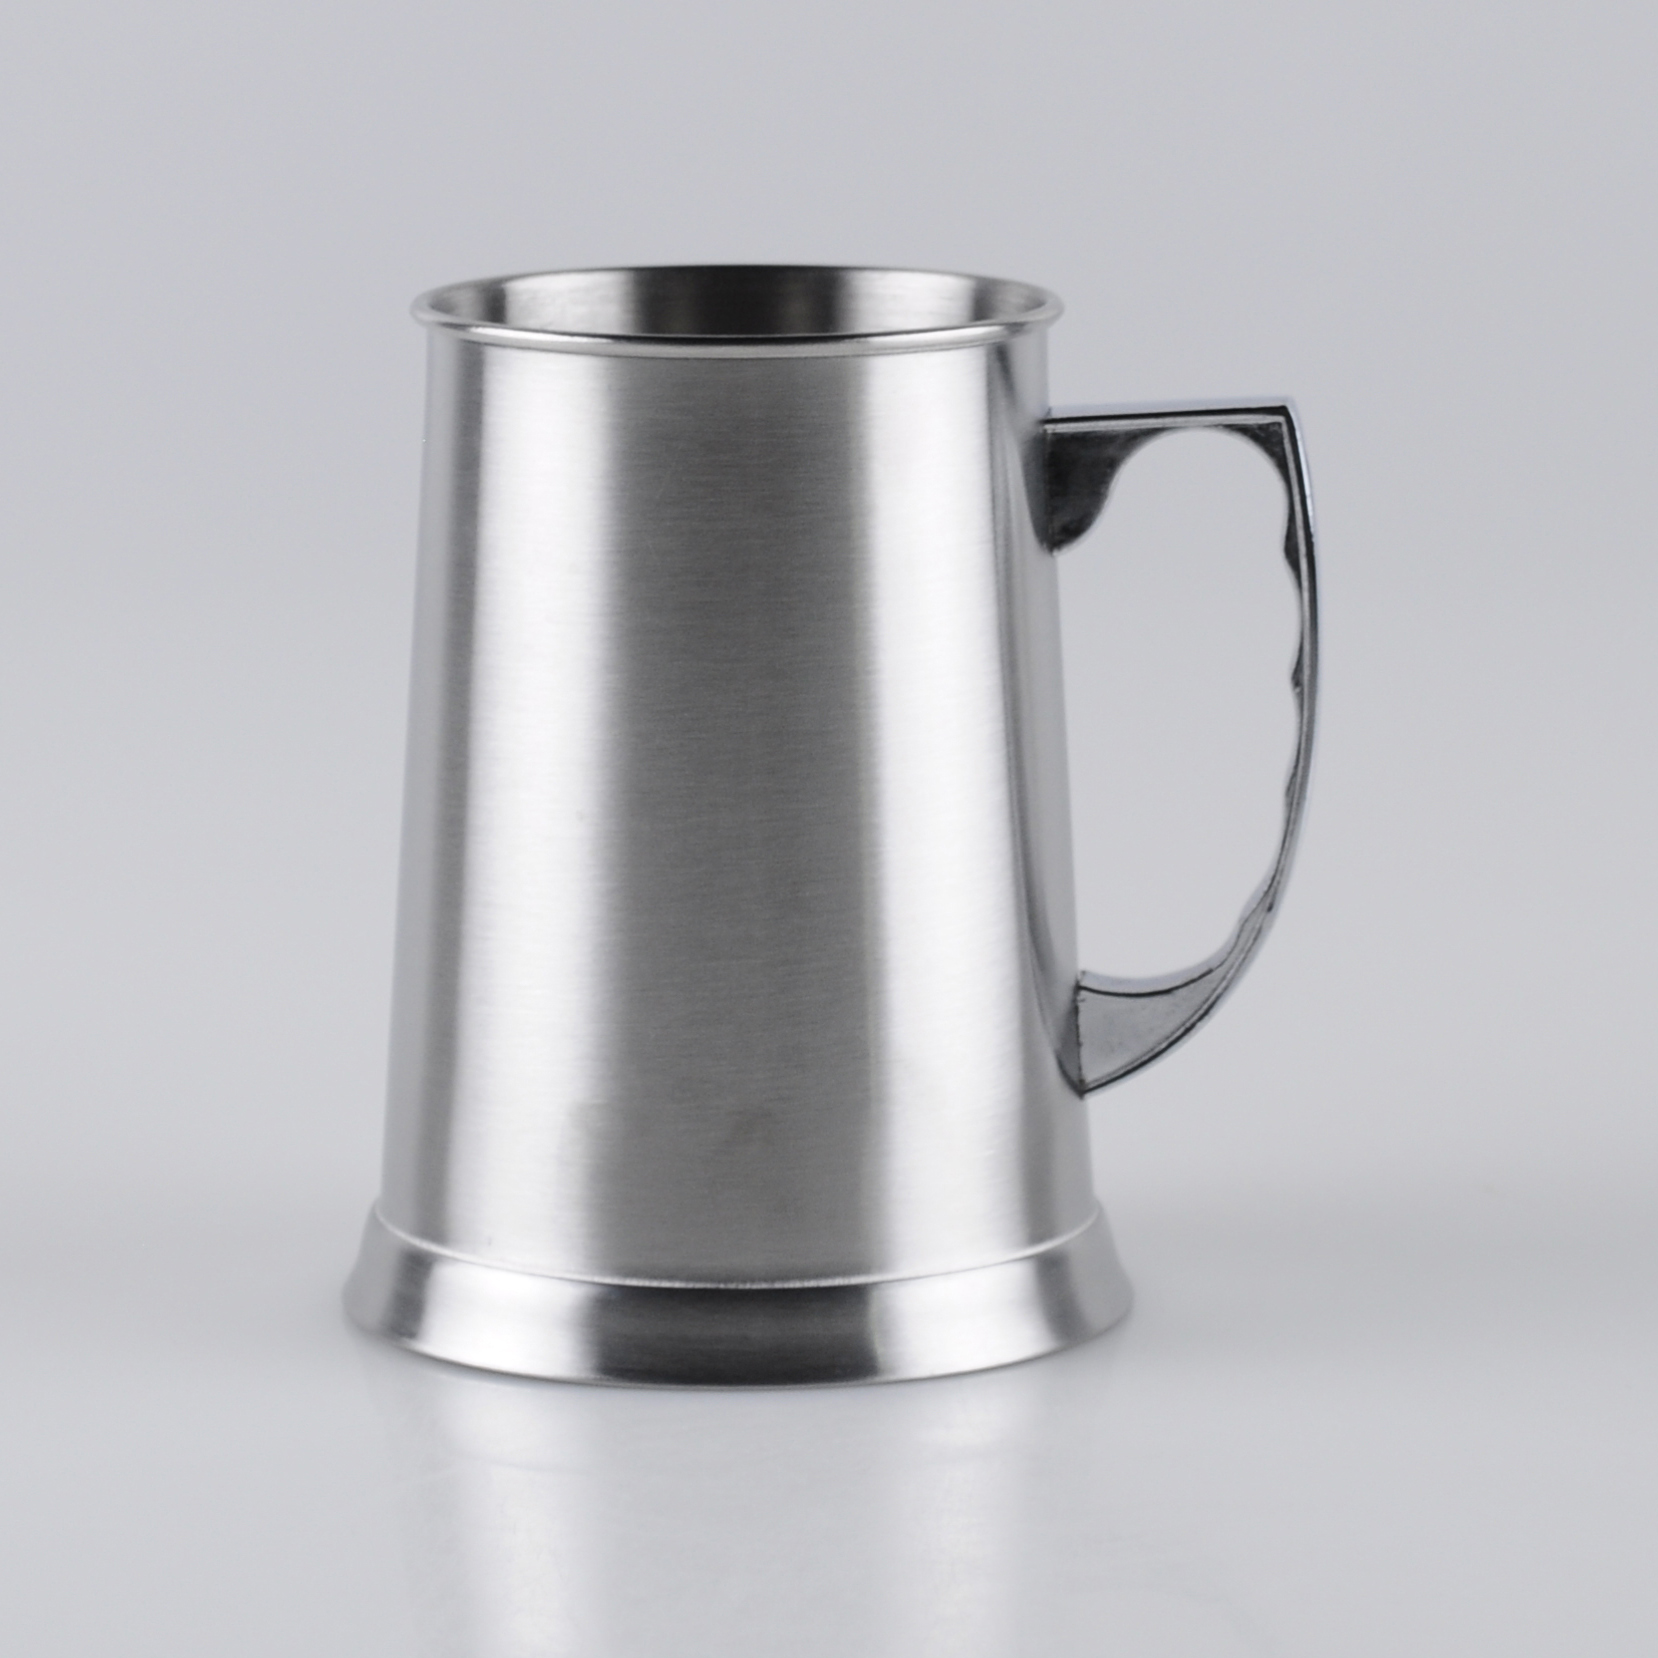 350ml-stainless-steel-beer-cup-with-handle (1)